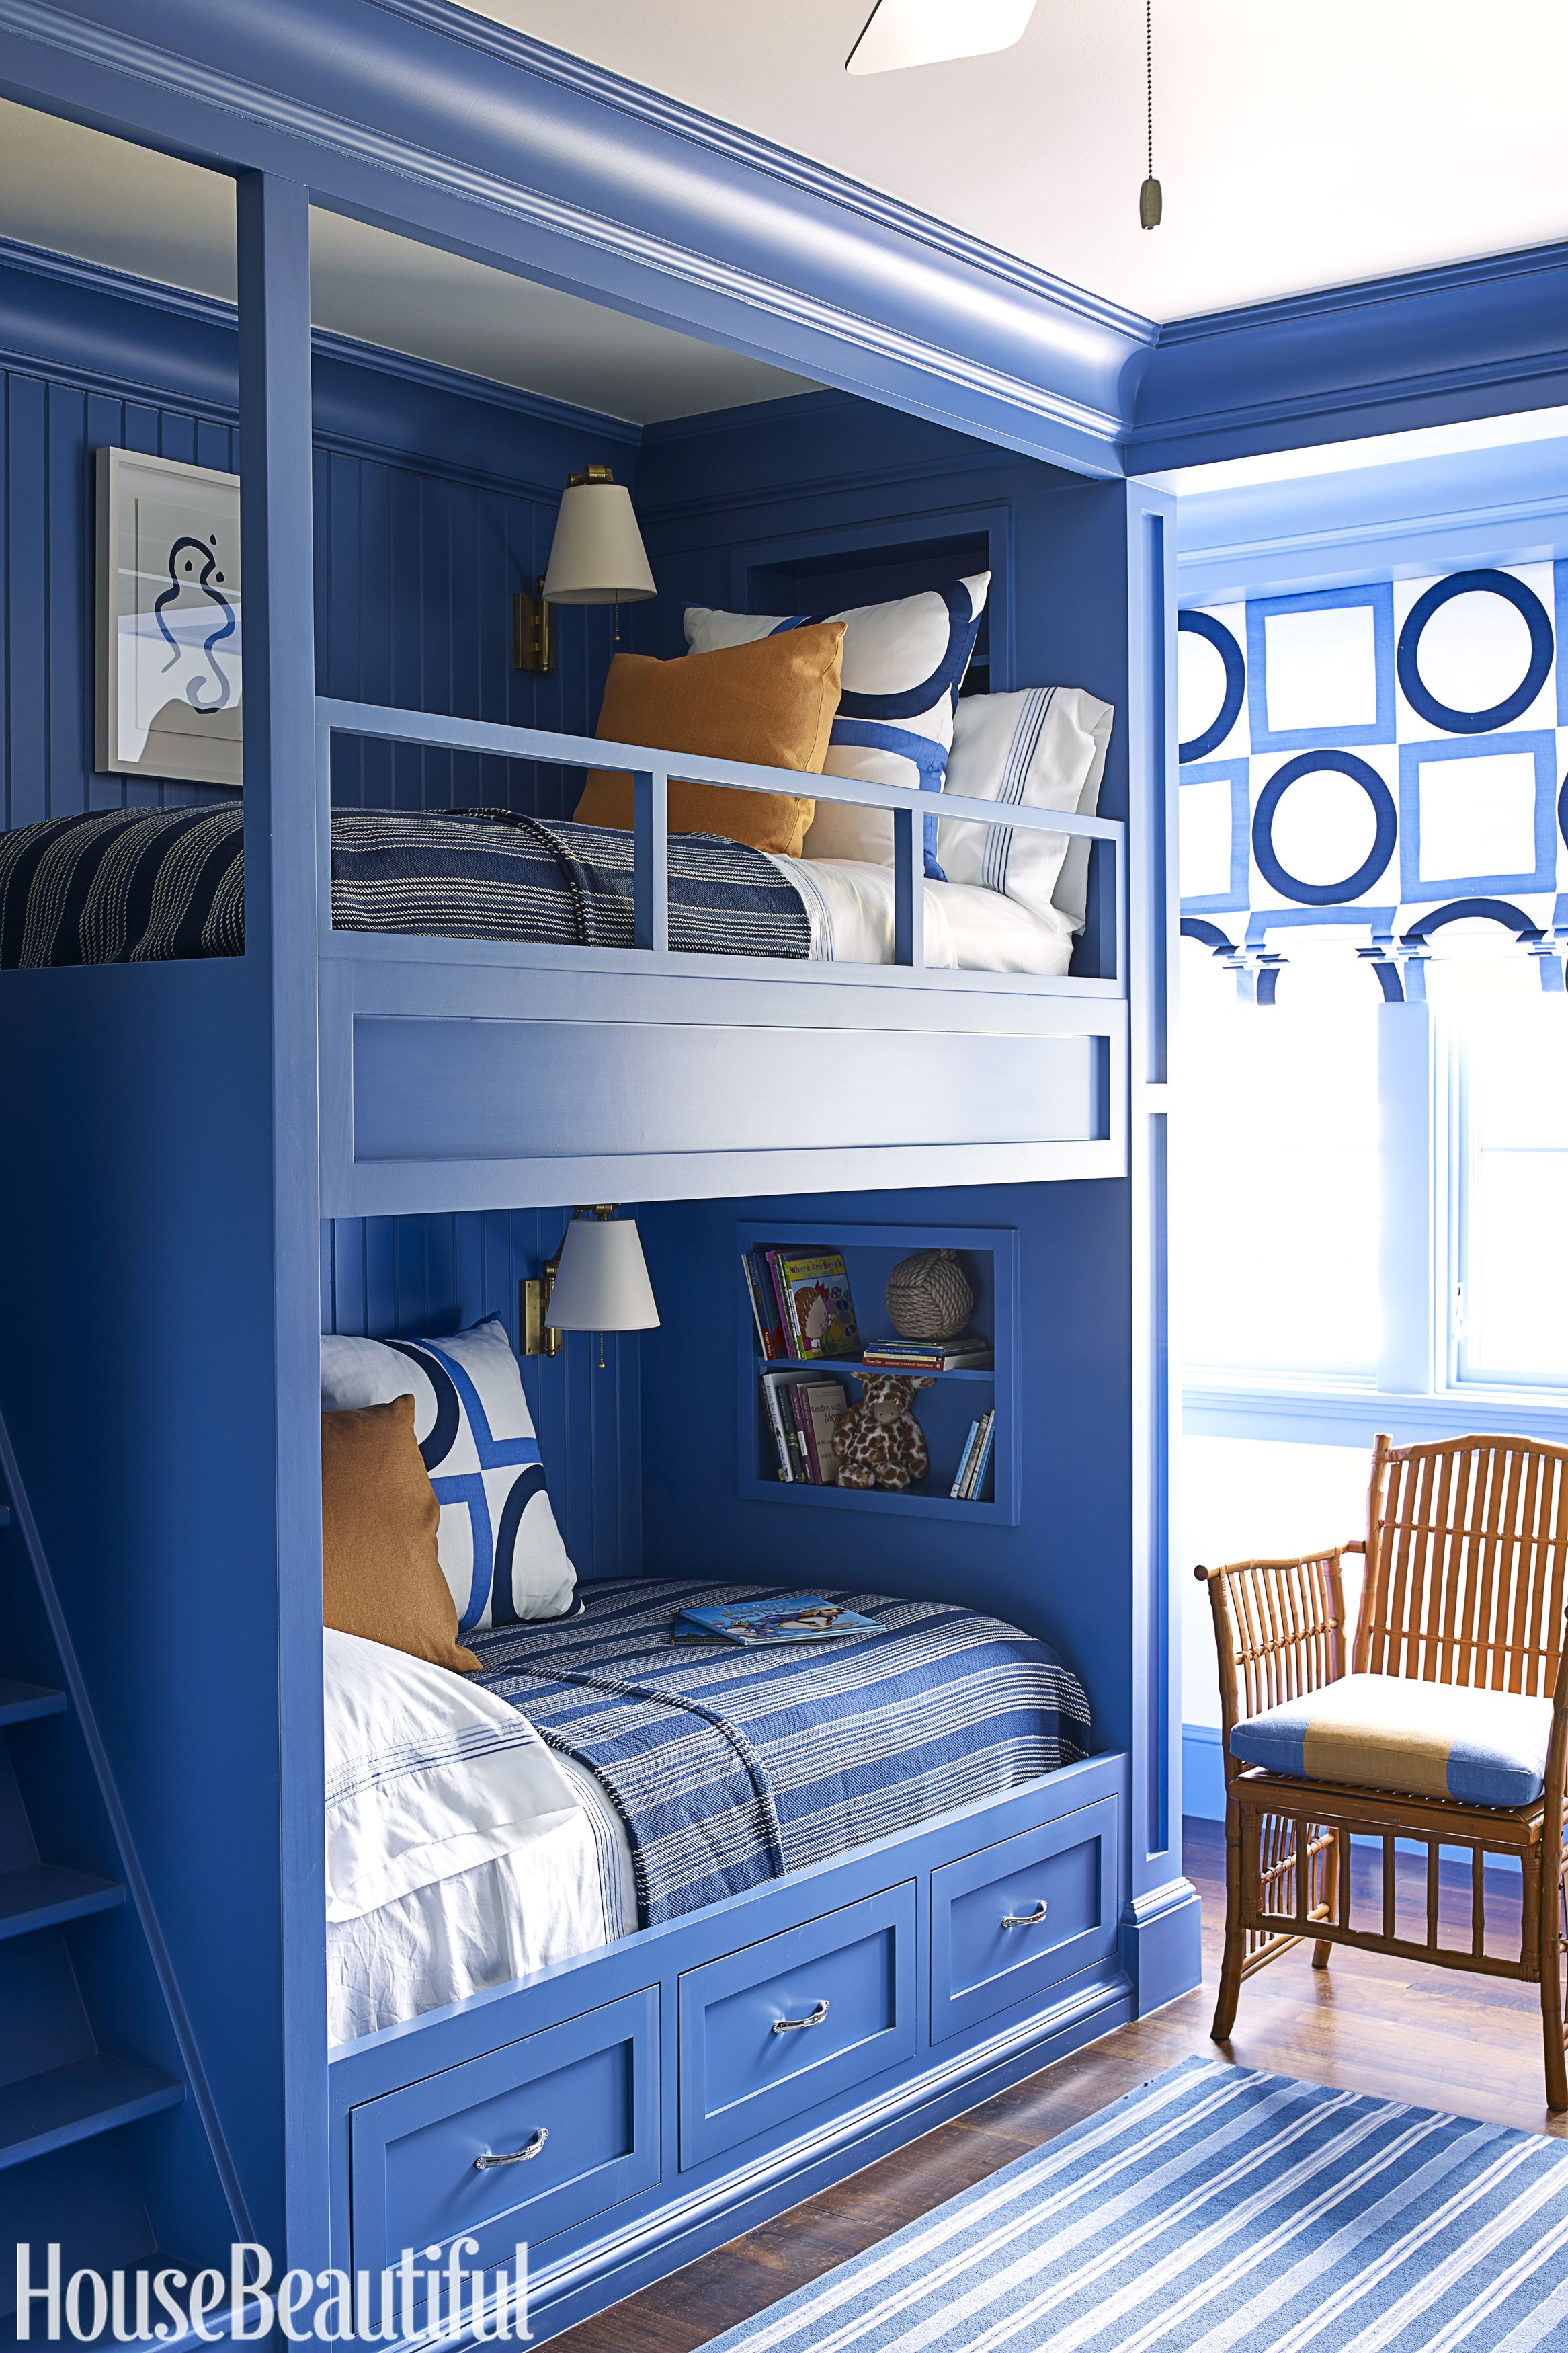 The 20 Coziest Bedrooms Ever Bunk Bed Rooms Bunk Beds With